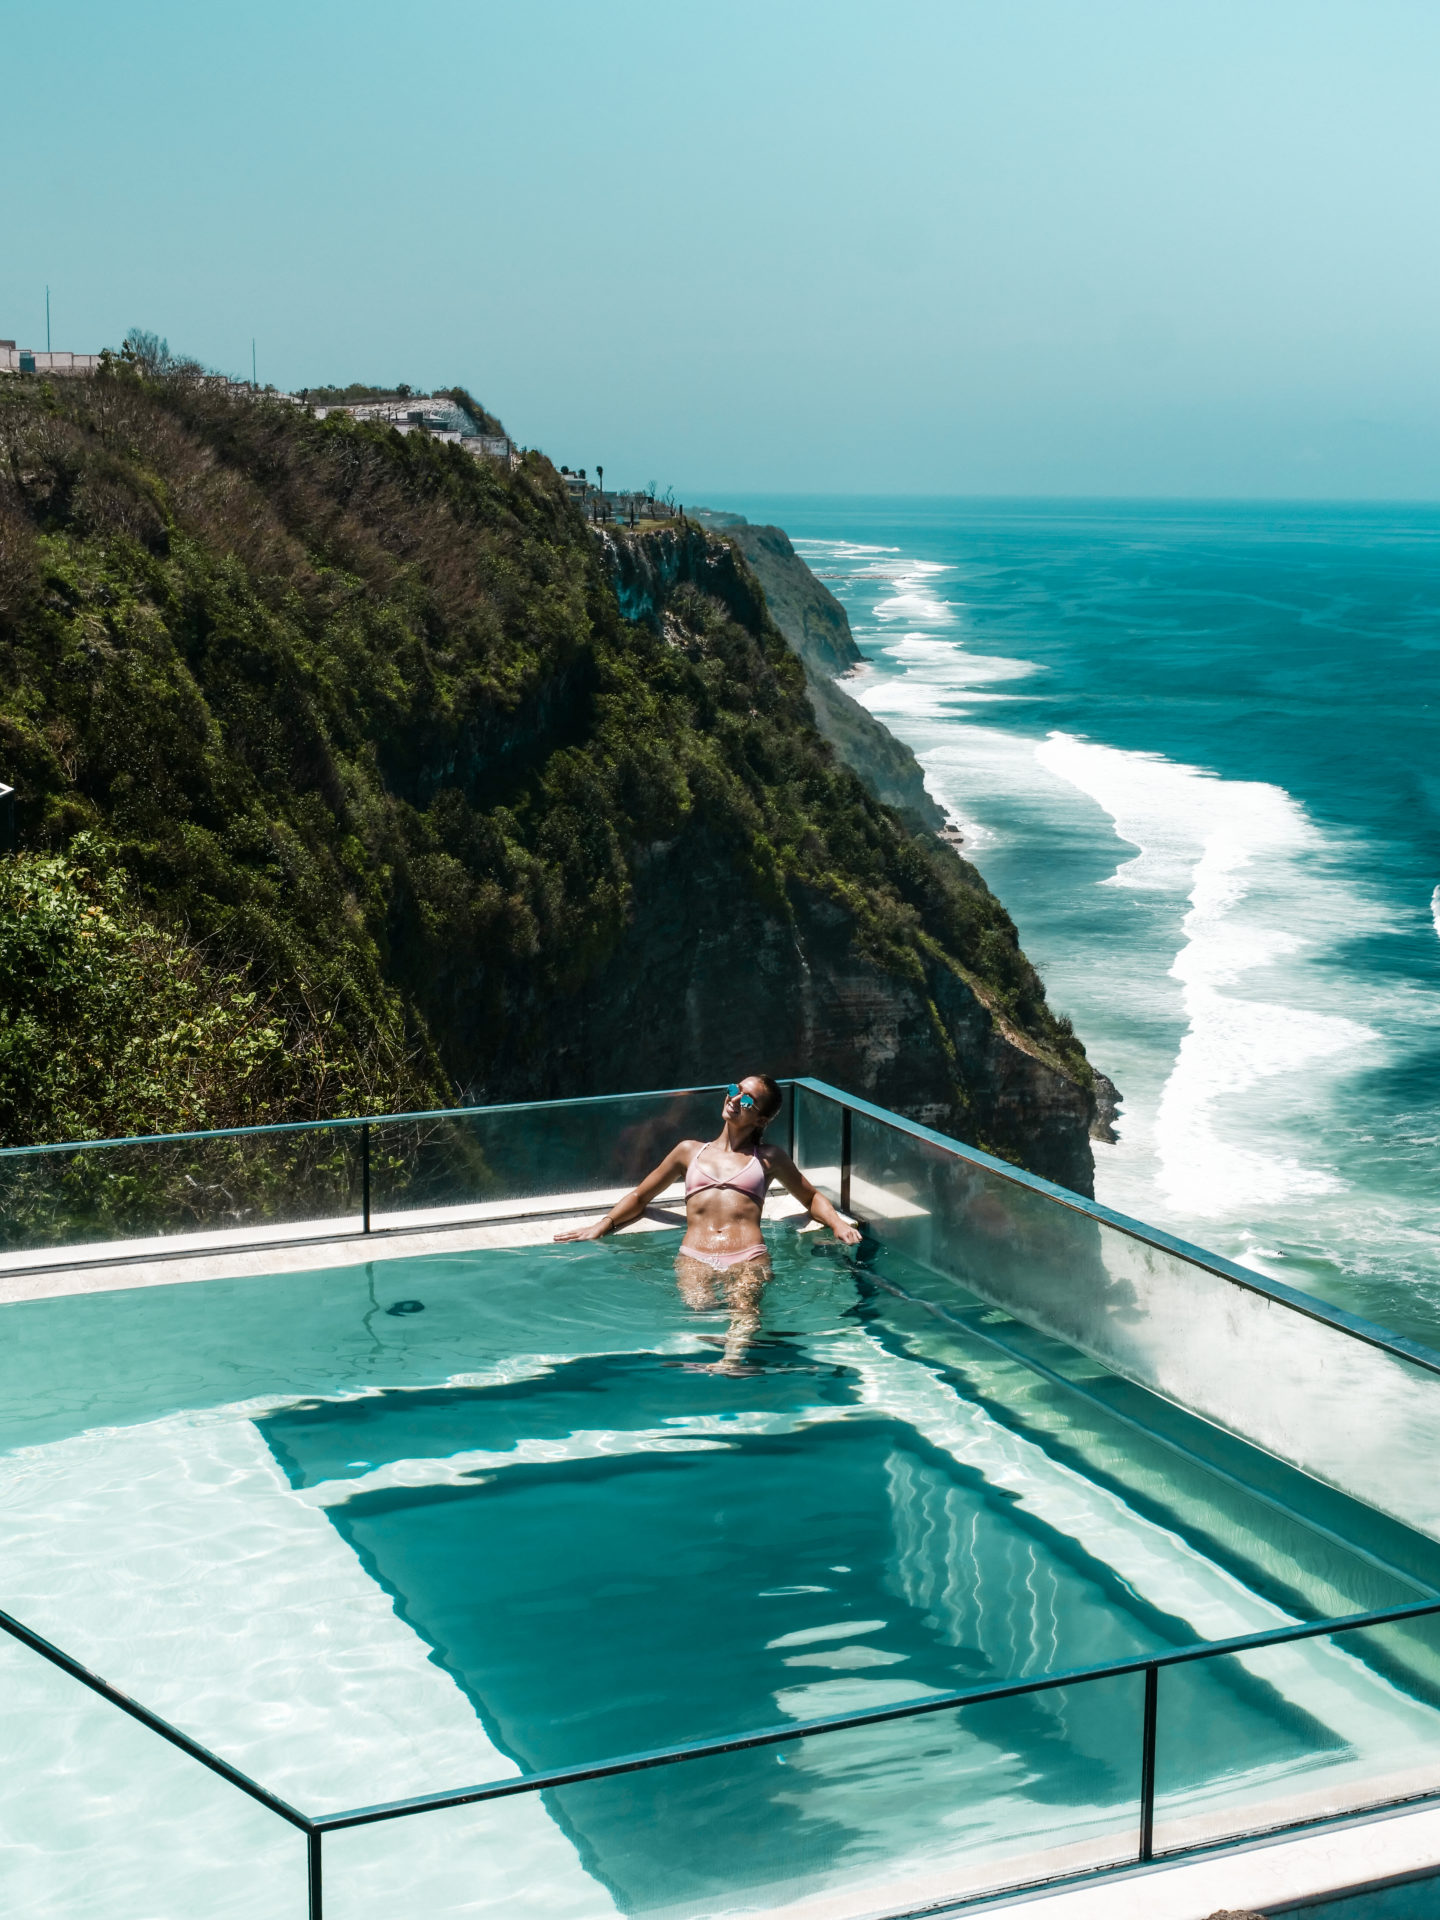 Oneeighty pool at The Edge